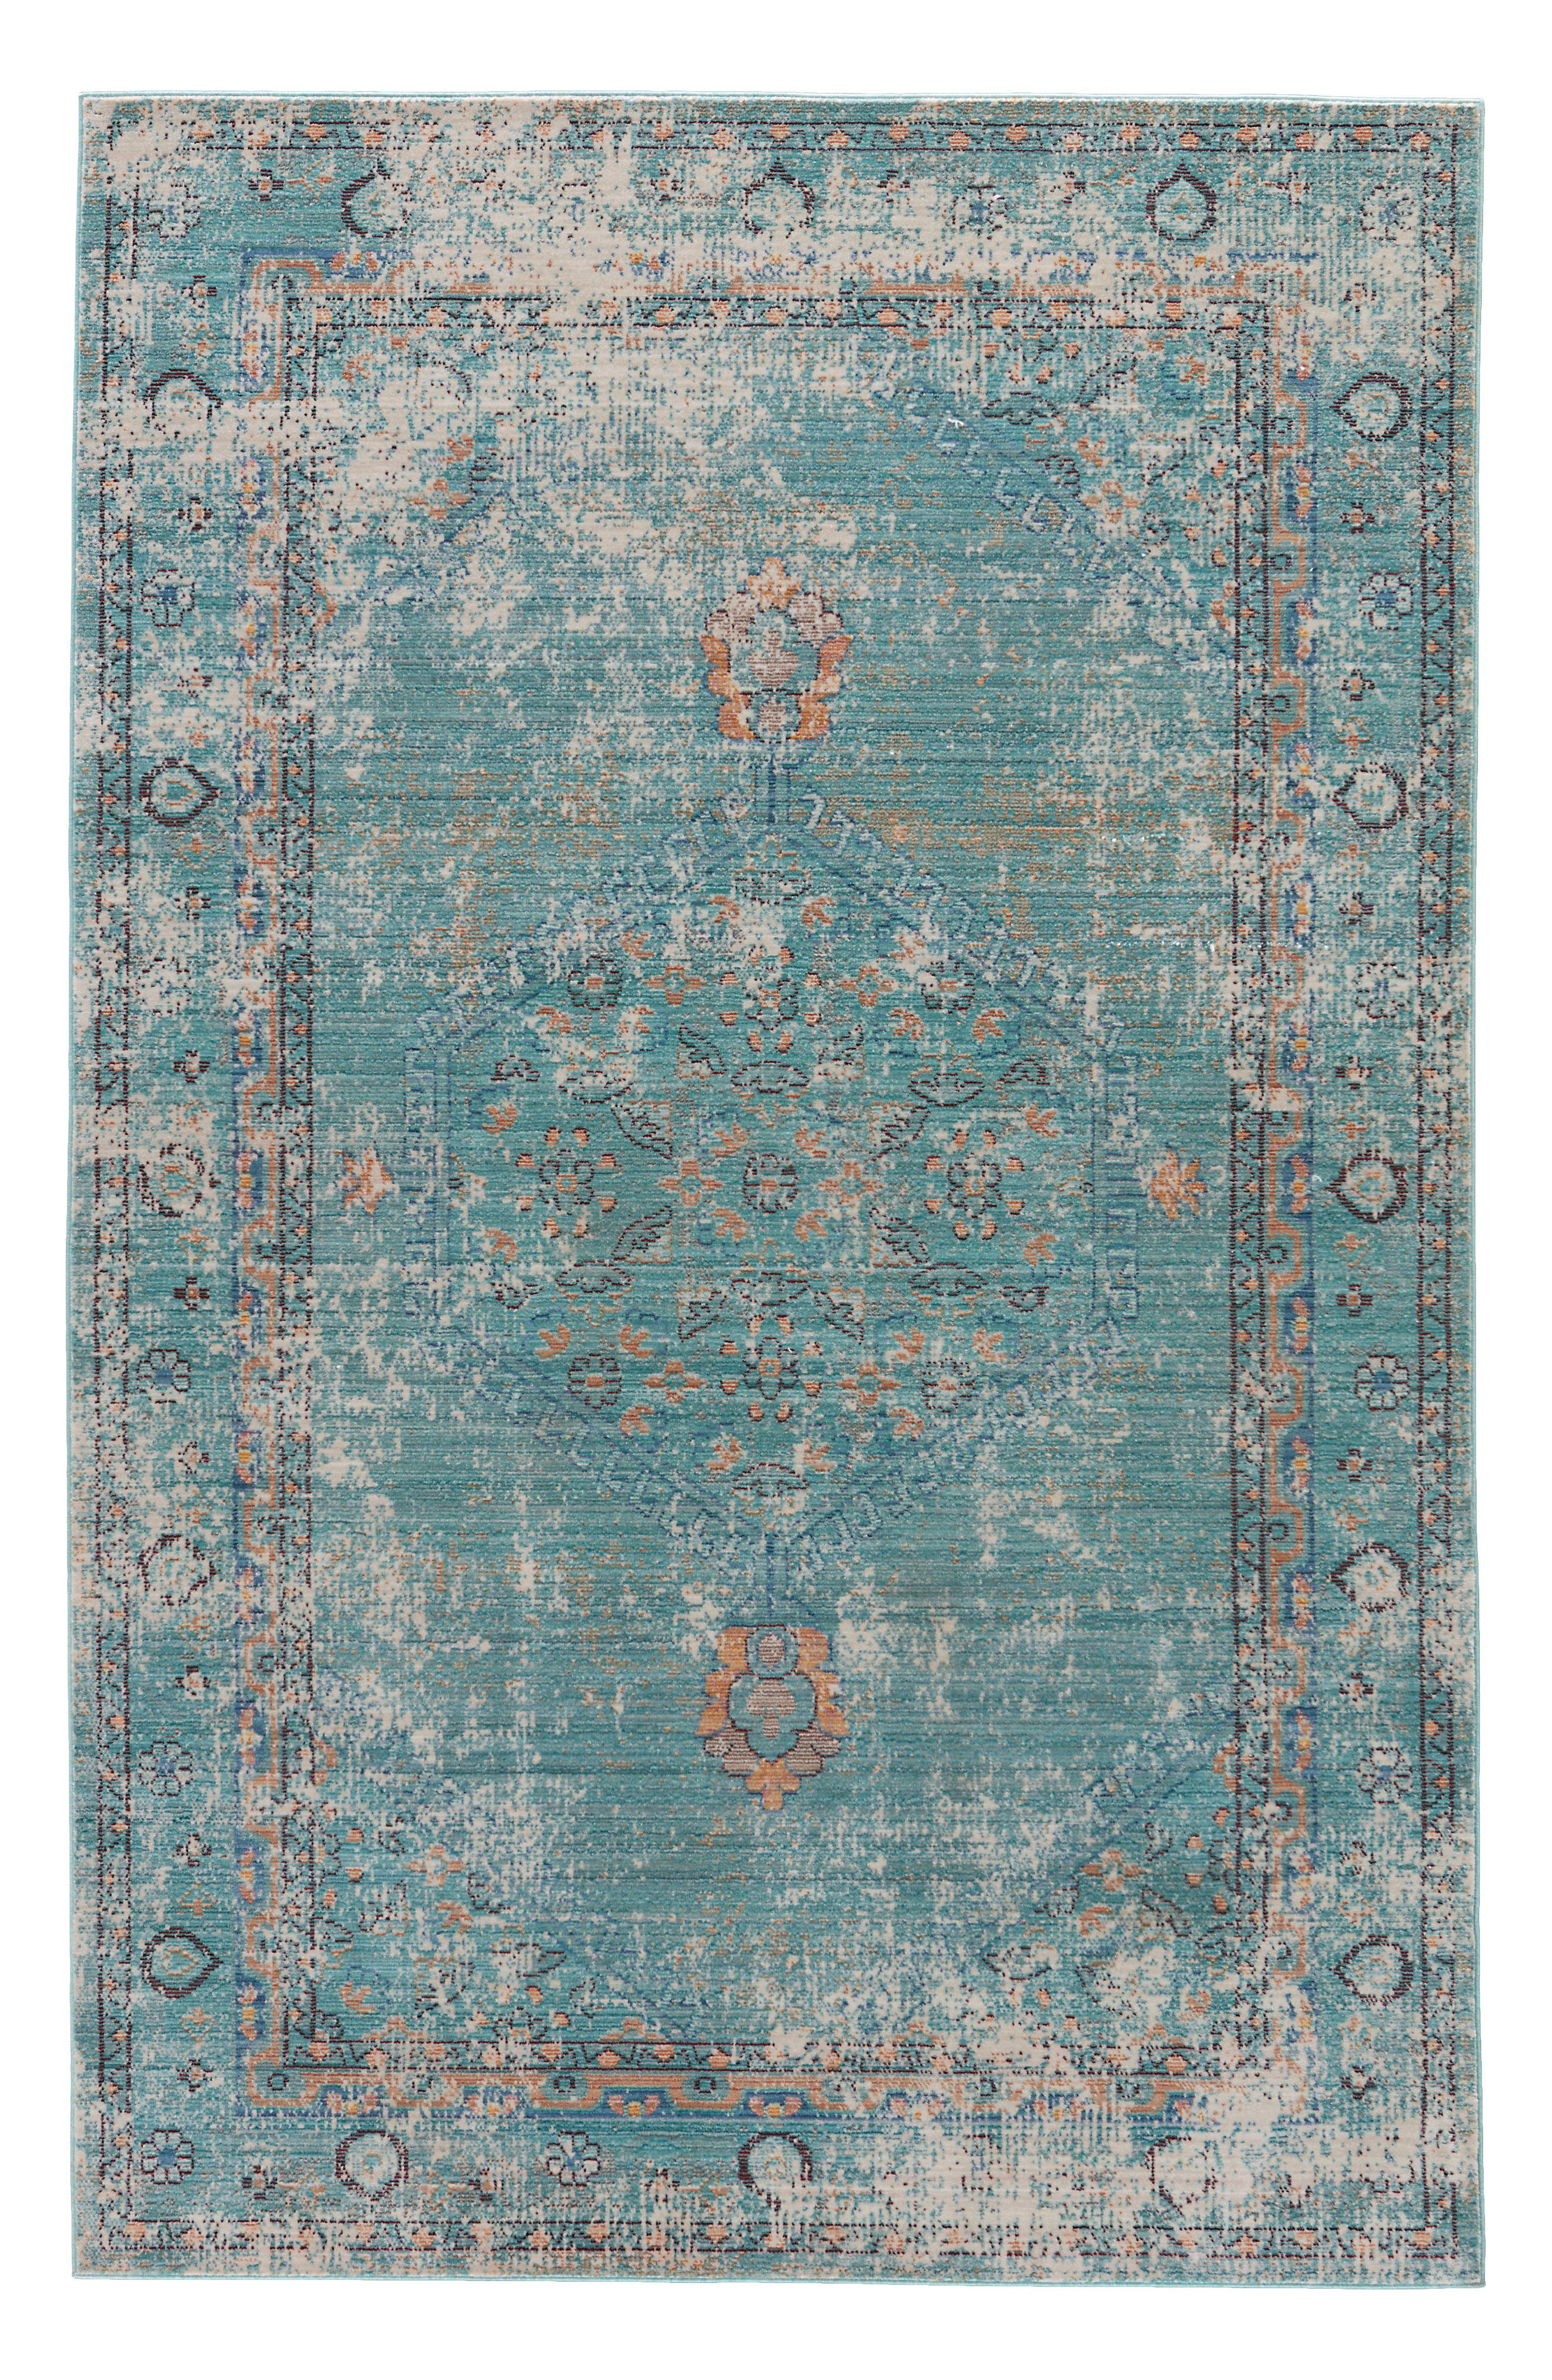 Jaipur Contemporary Porcelain Rug